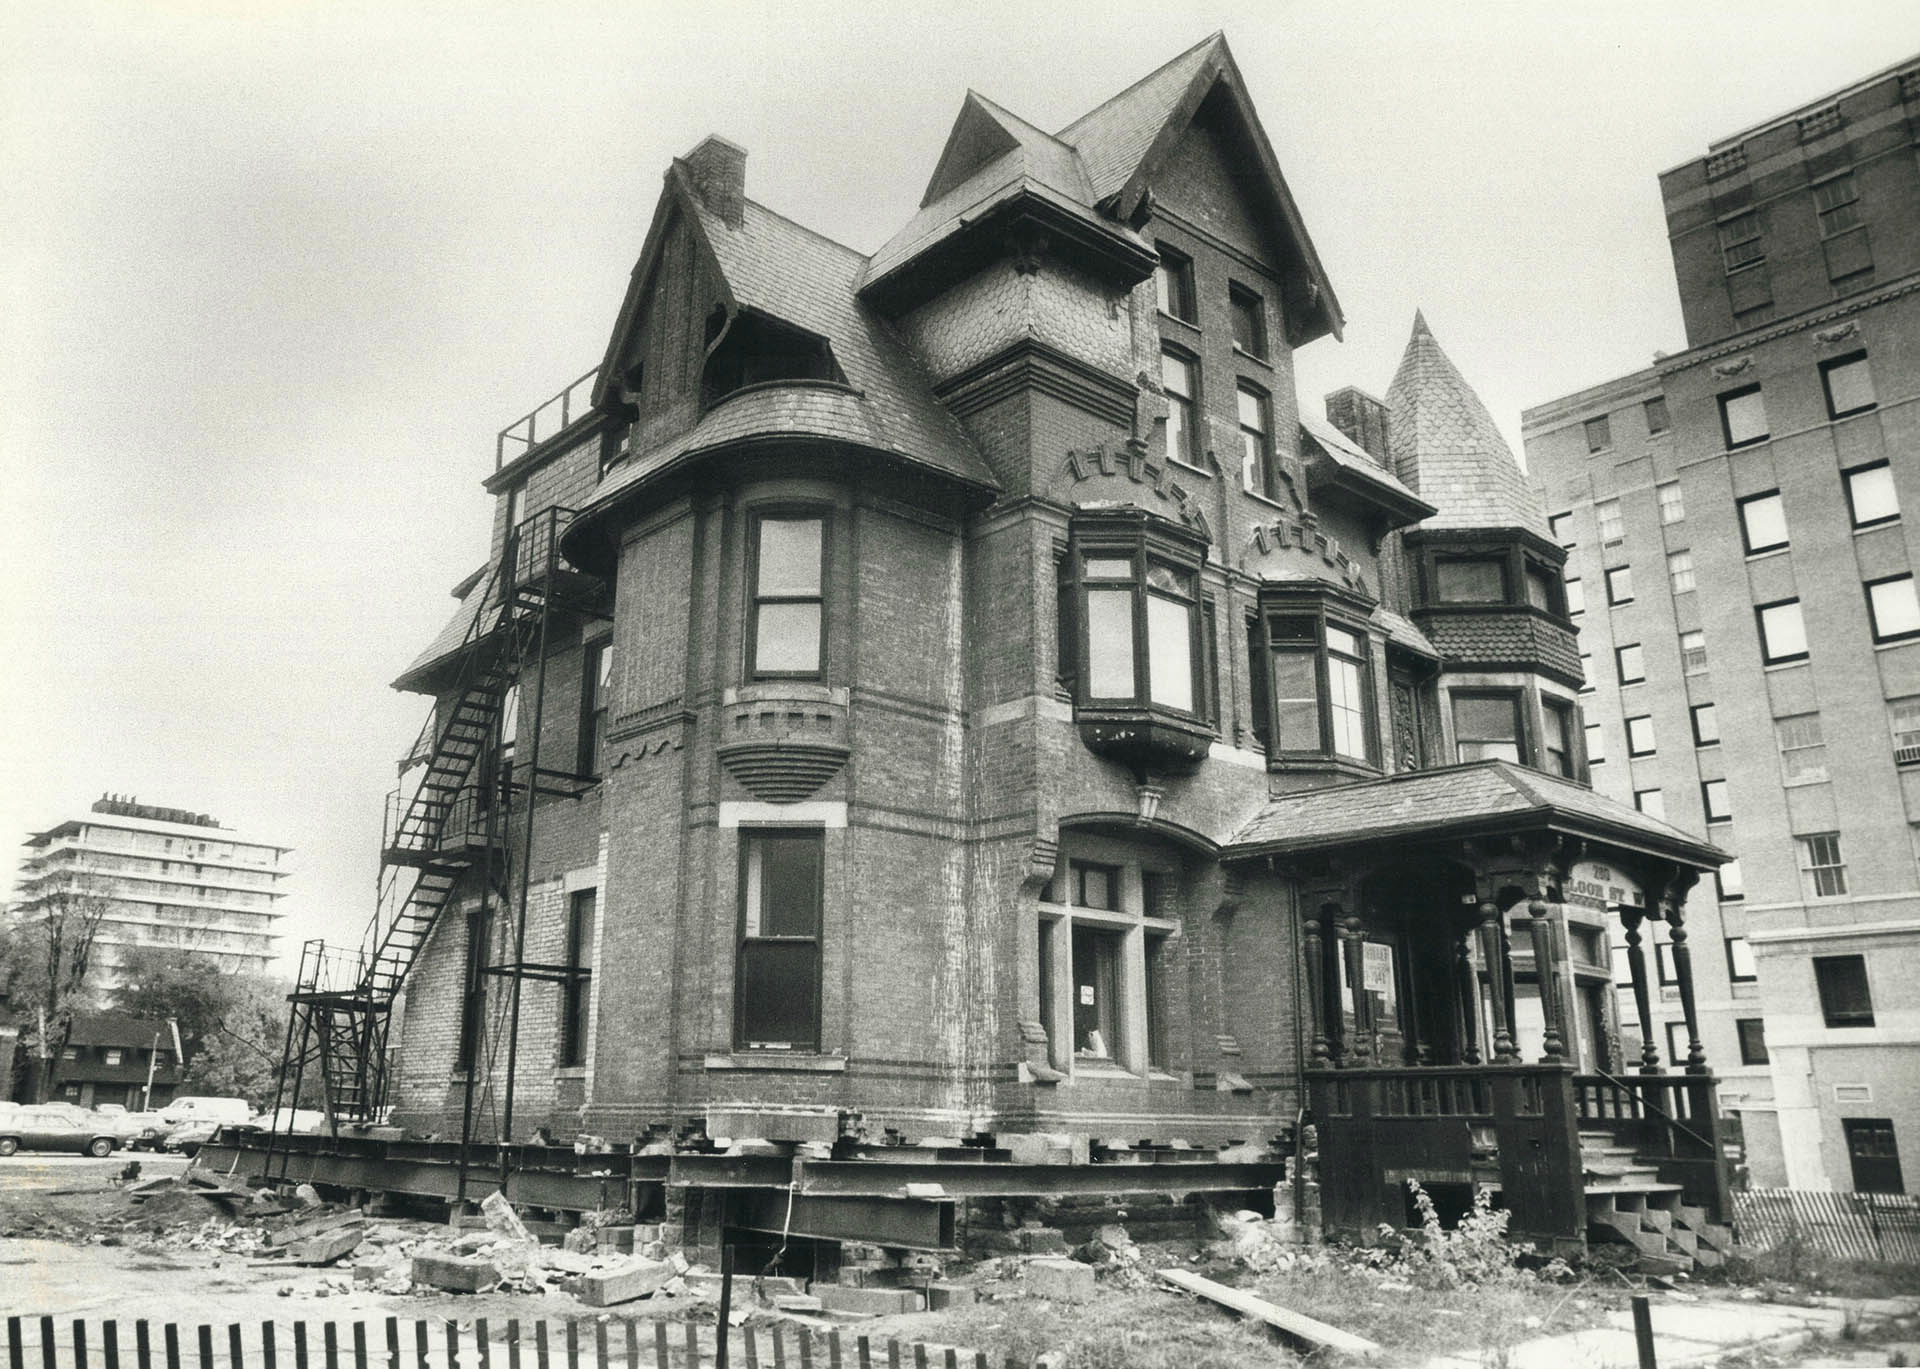 Historic James Crowther house raised 1.2 meters so it can be wheeled to a new location rather than be torn down.